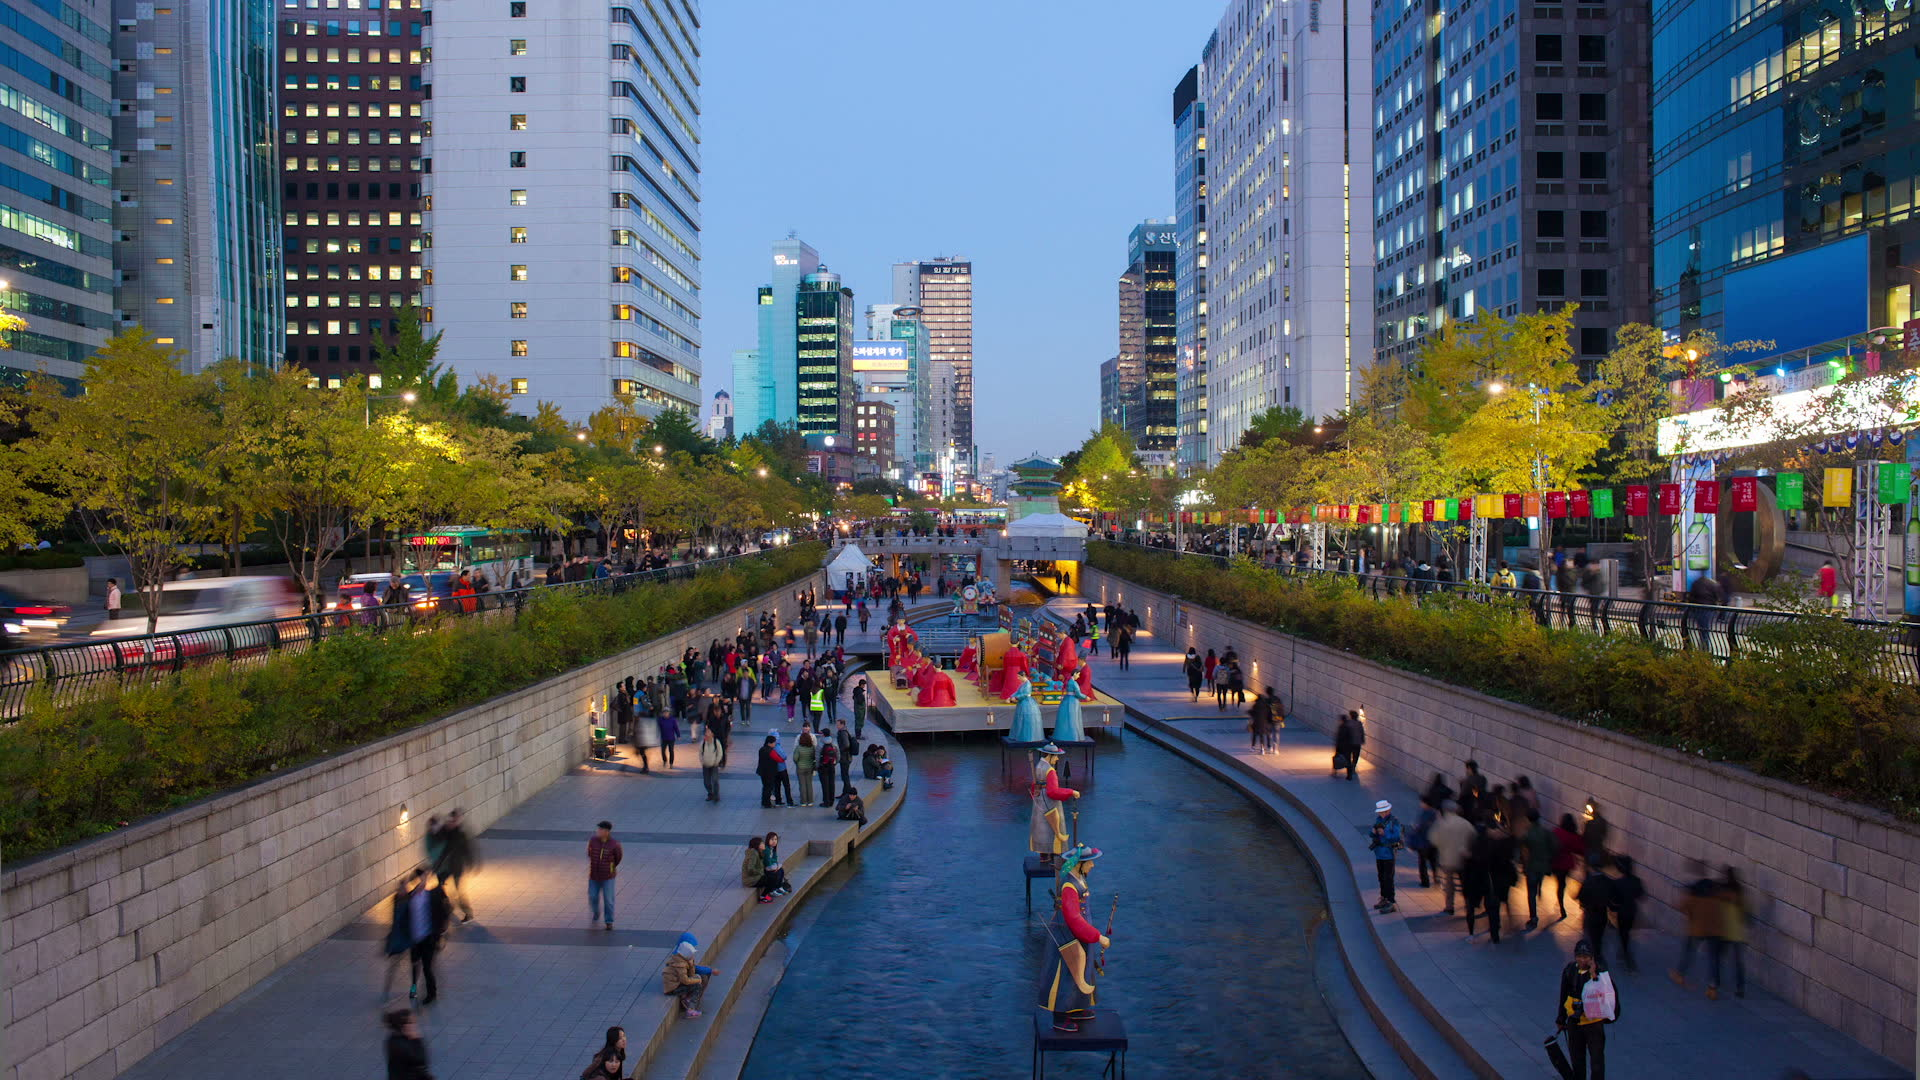 02 Cheonggyecheon